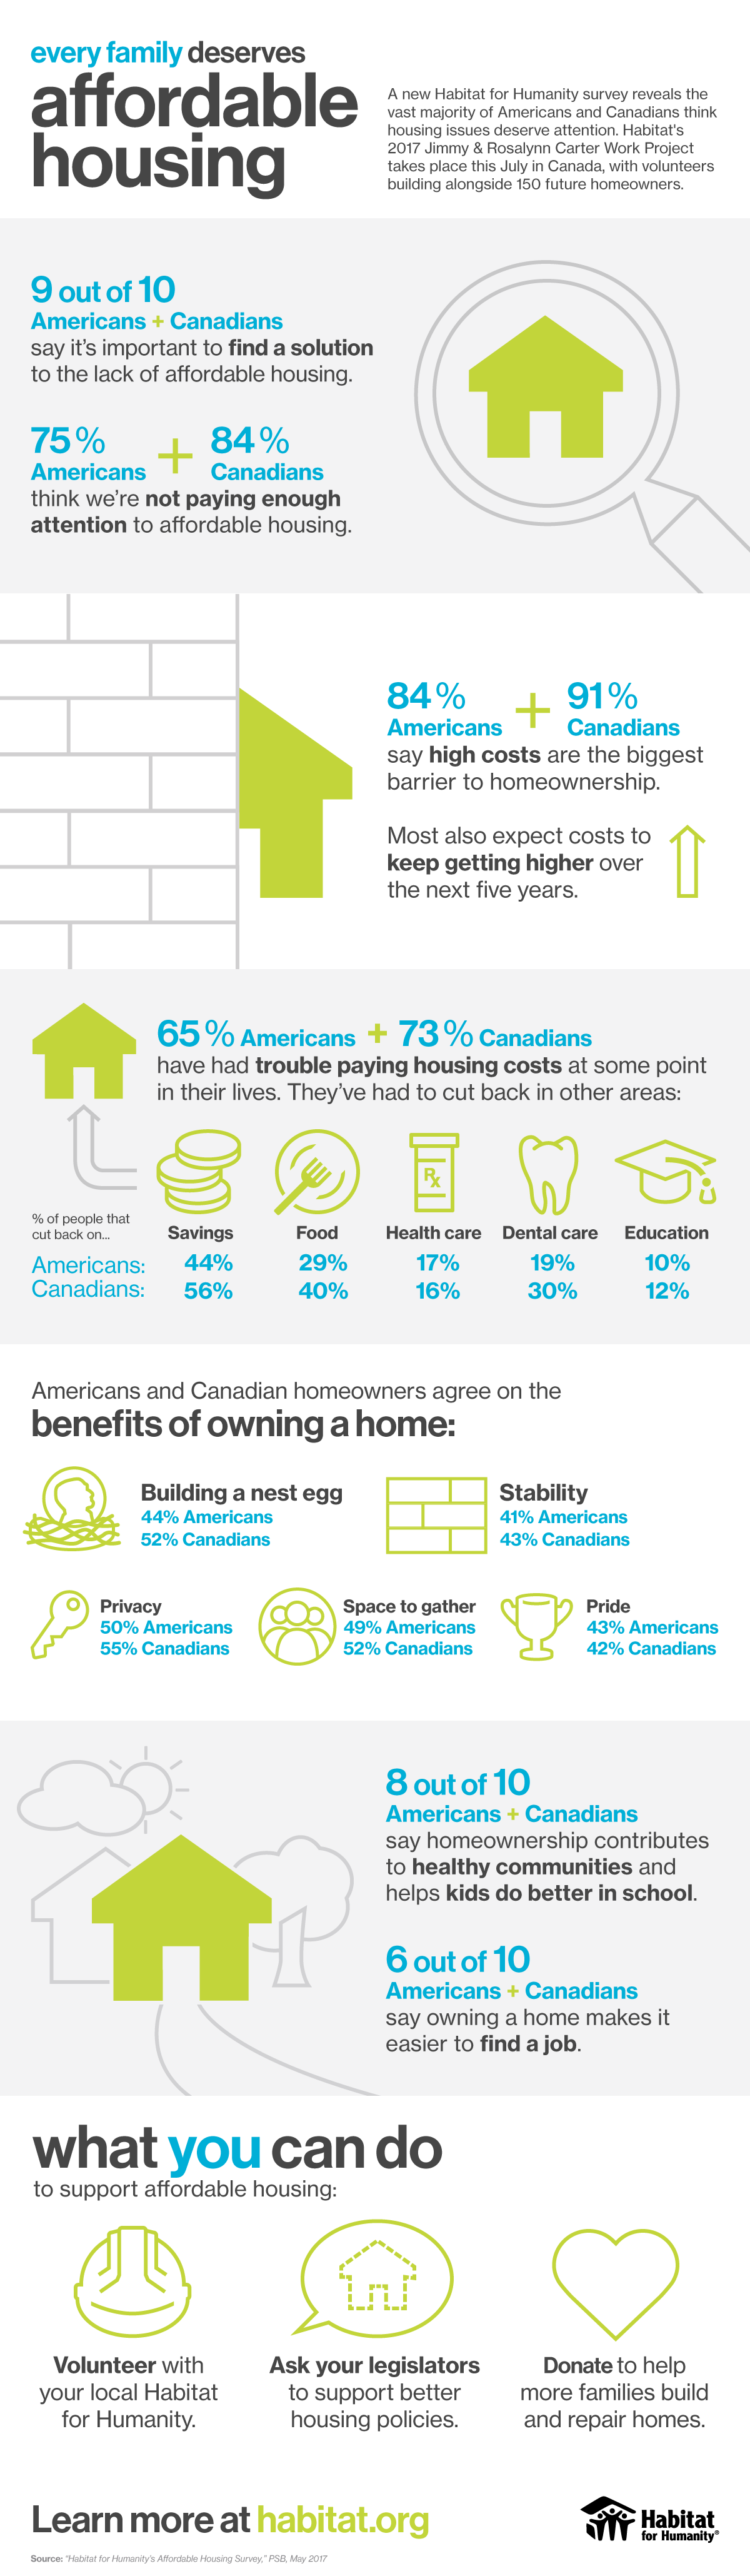 infographic-hfh-affordable-housing-survey_1